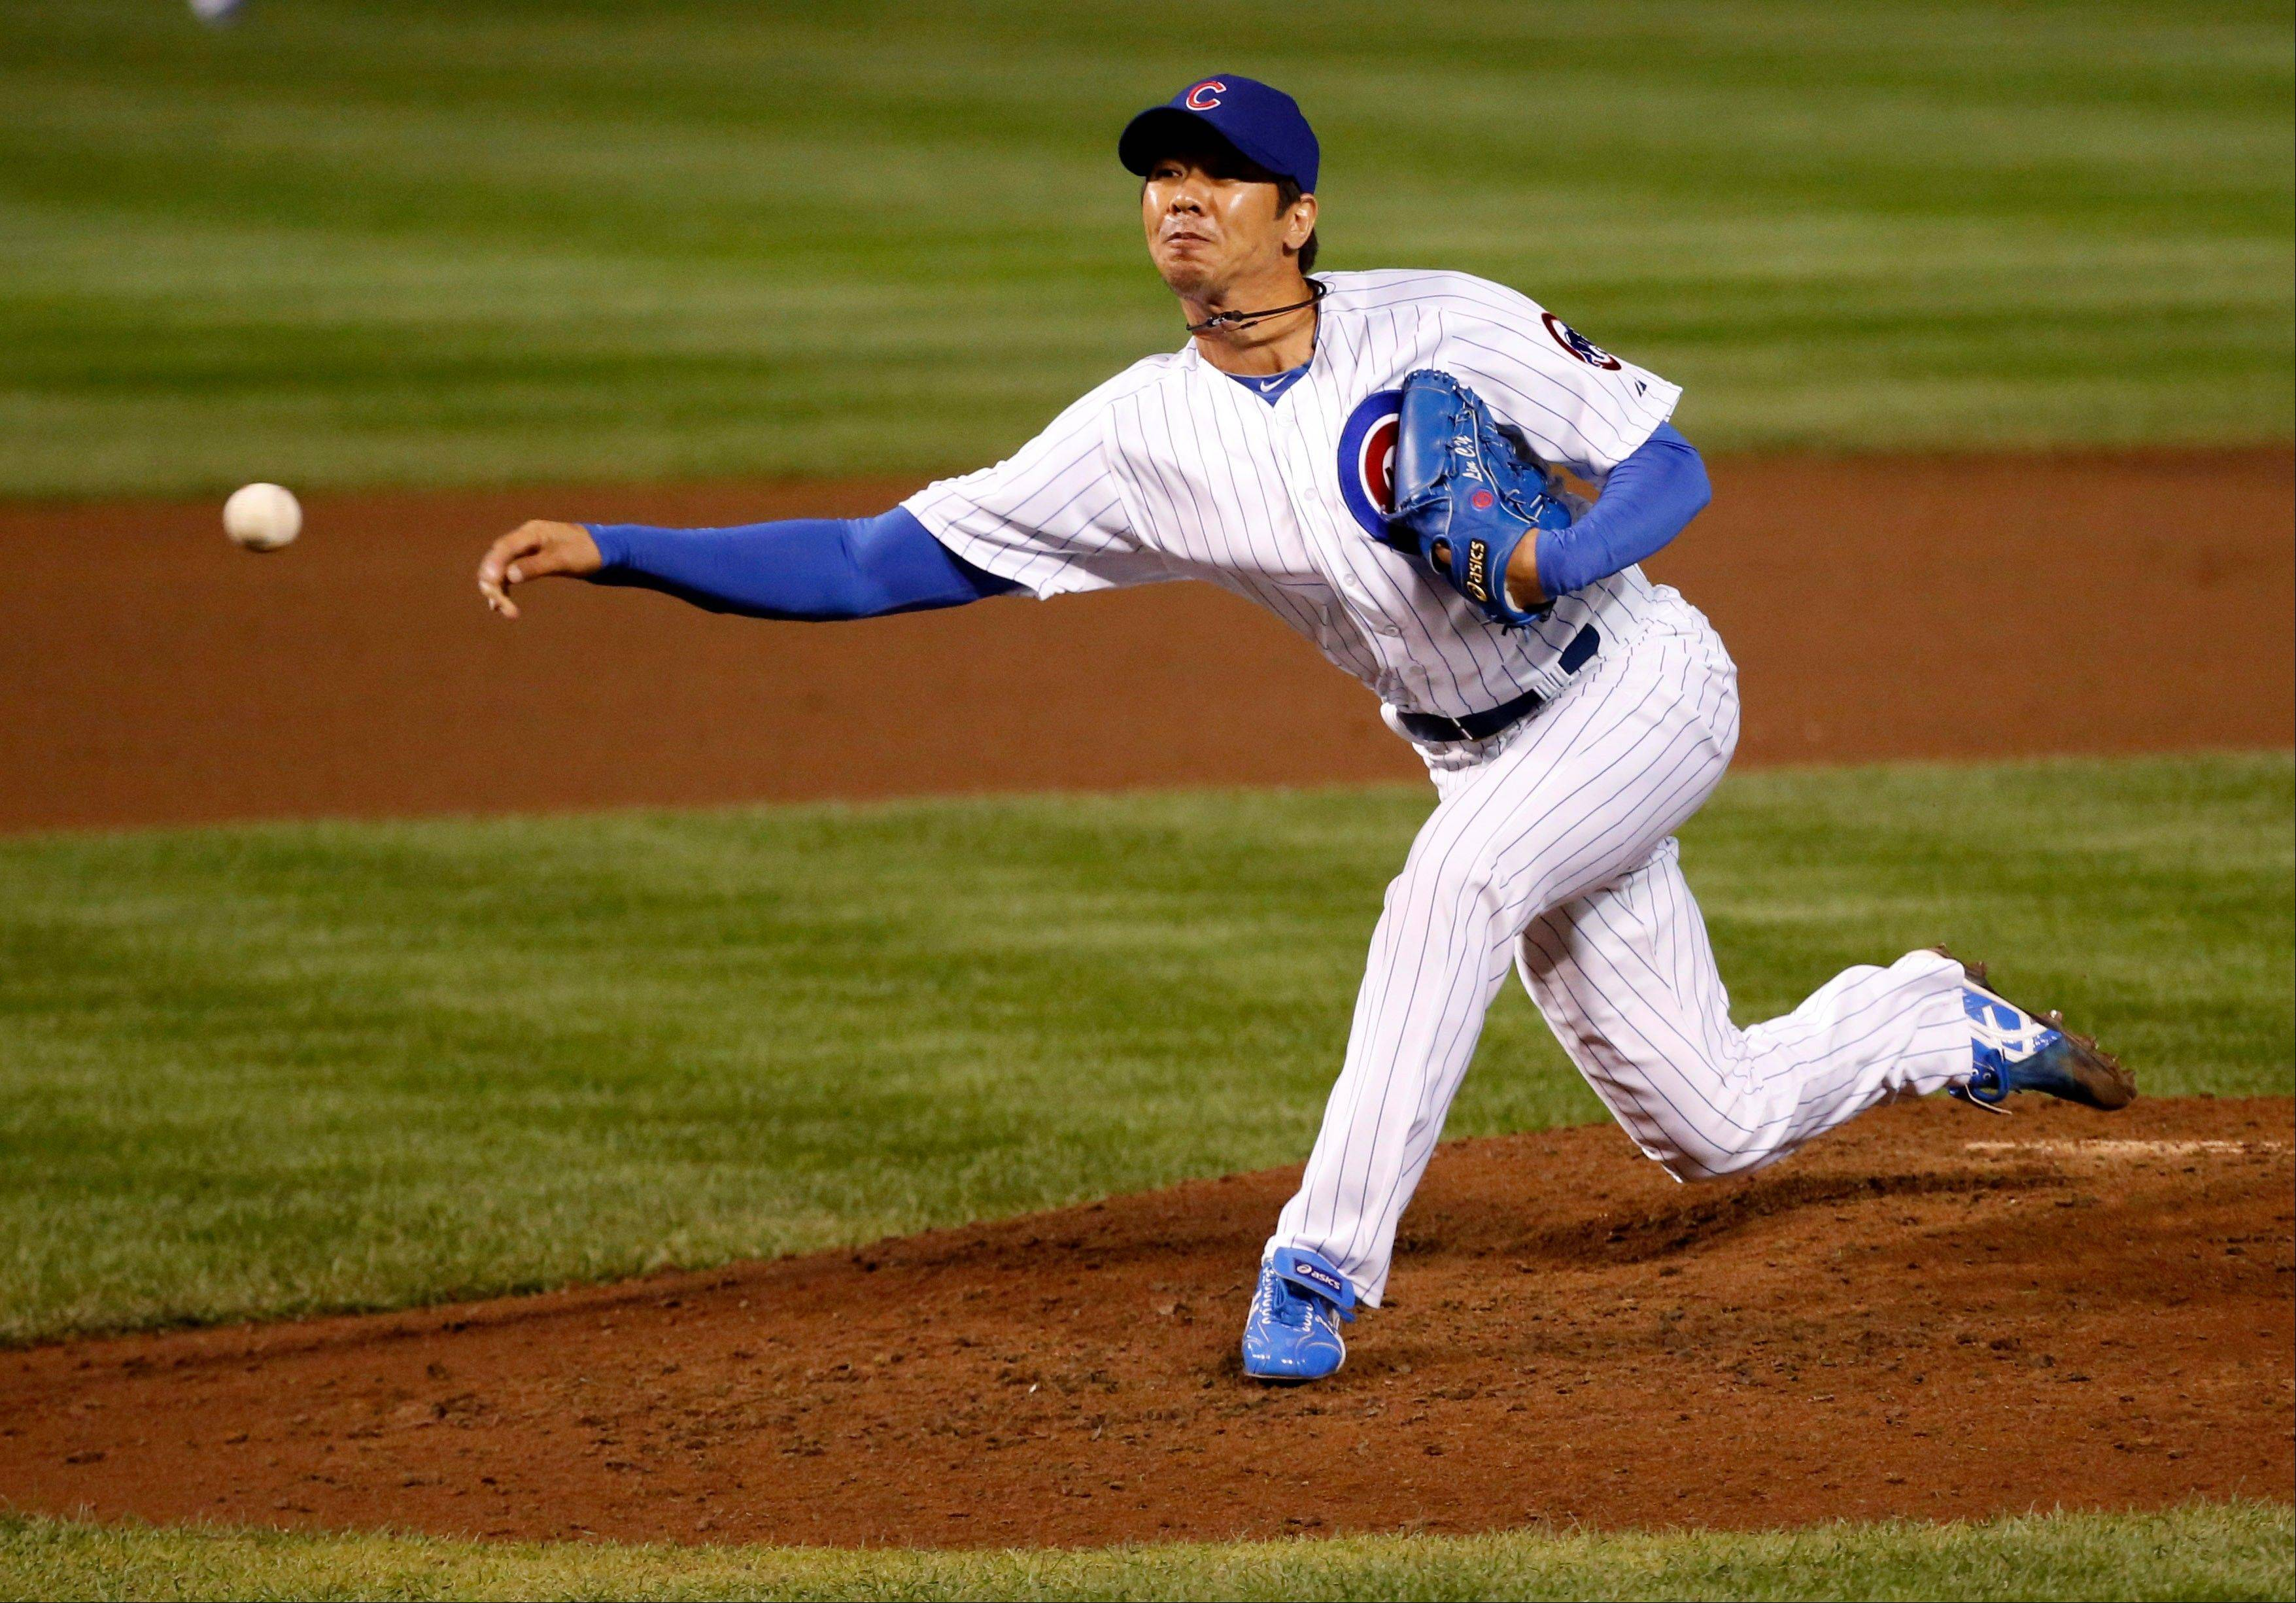 Cubs relief pitcher Chang-Yong Lim delivers during the fifth inning of a baseball game against the Pittsburgh Pirates Tuesday, Sept. 24, 2013, in Chicago.